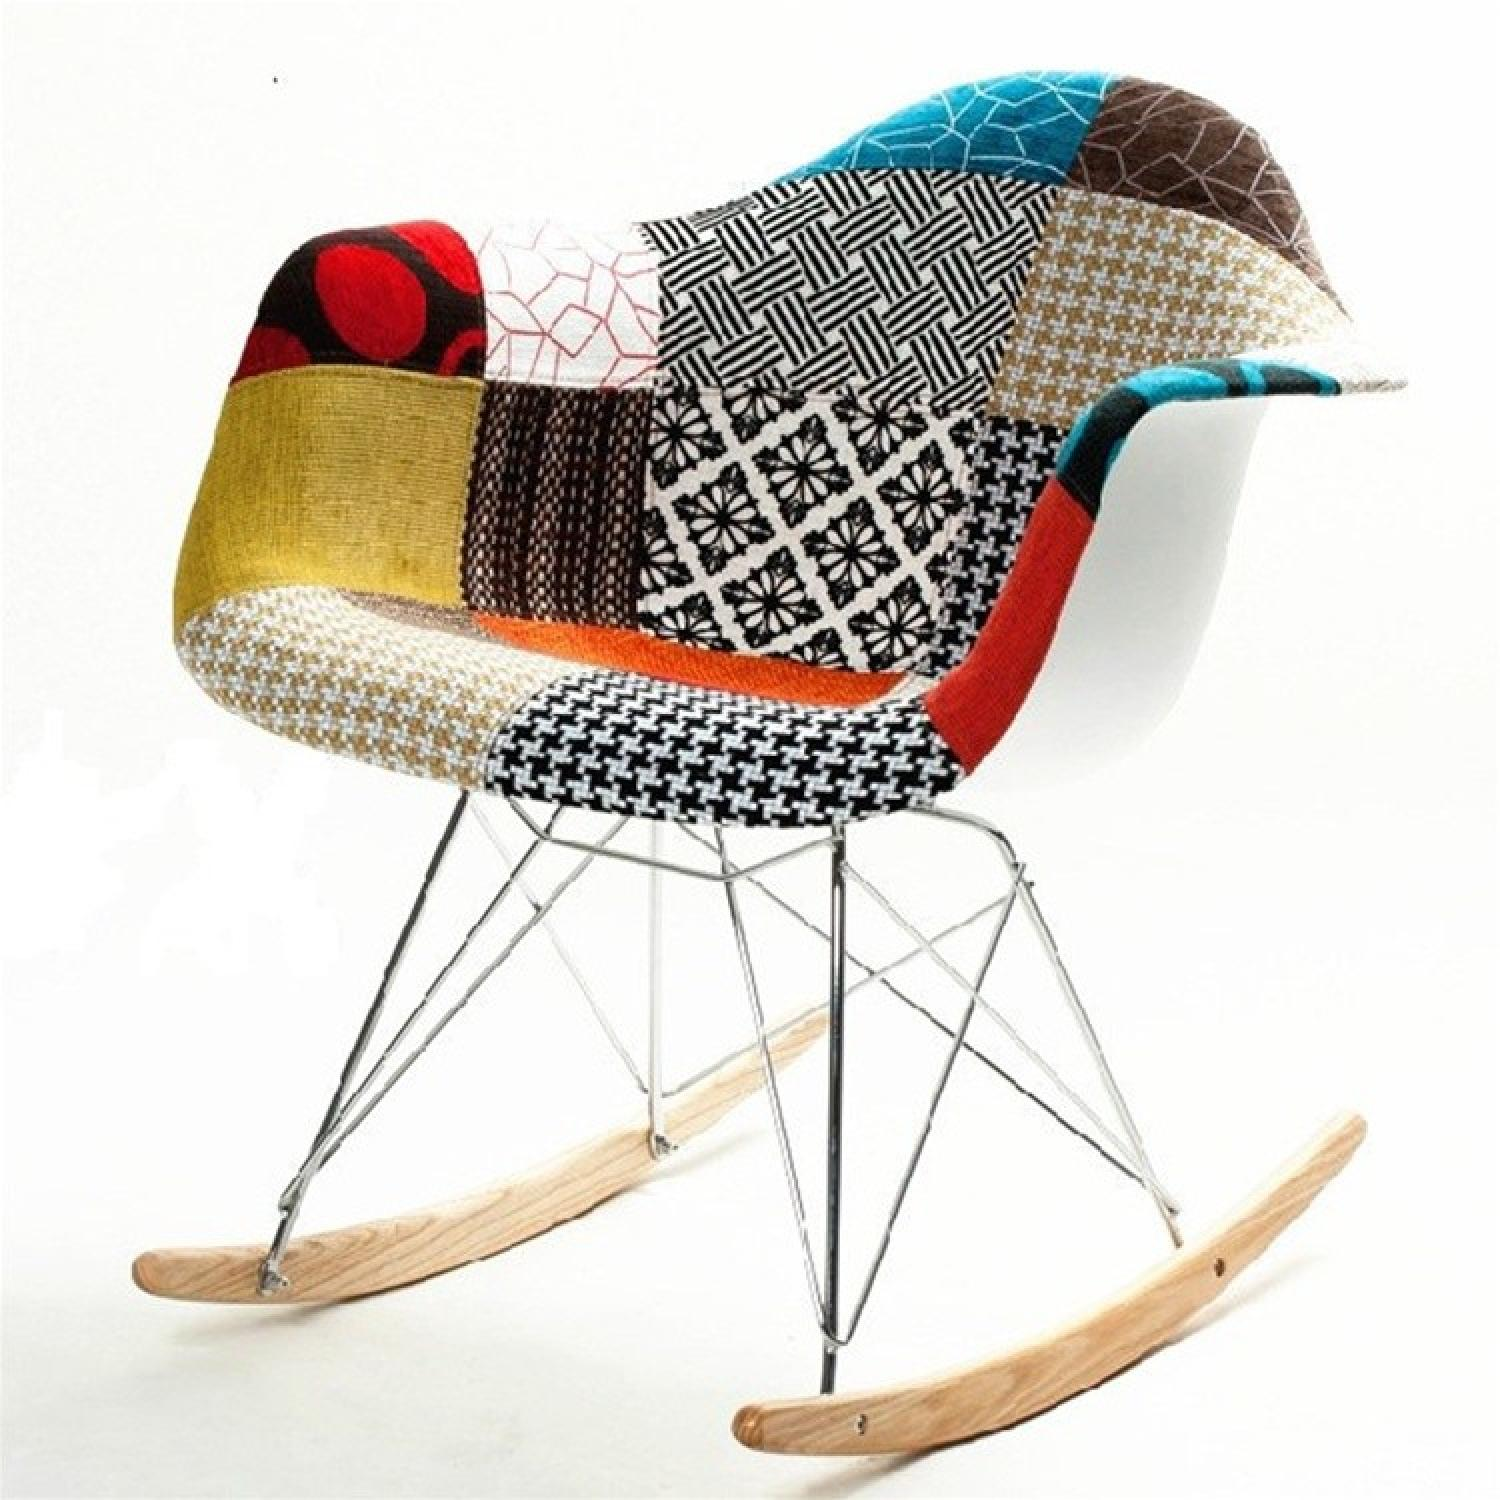 Rocking Chair w/ Colorful Patchwork Fabric in ABS Frame Steel Legs & Ash Wood Runners